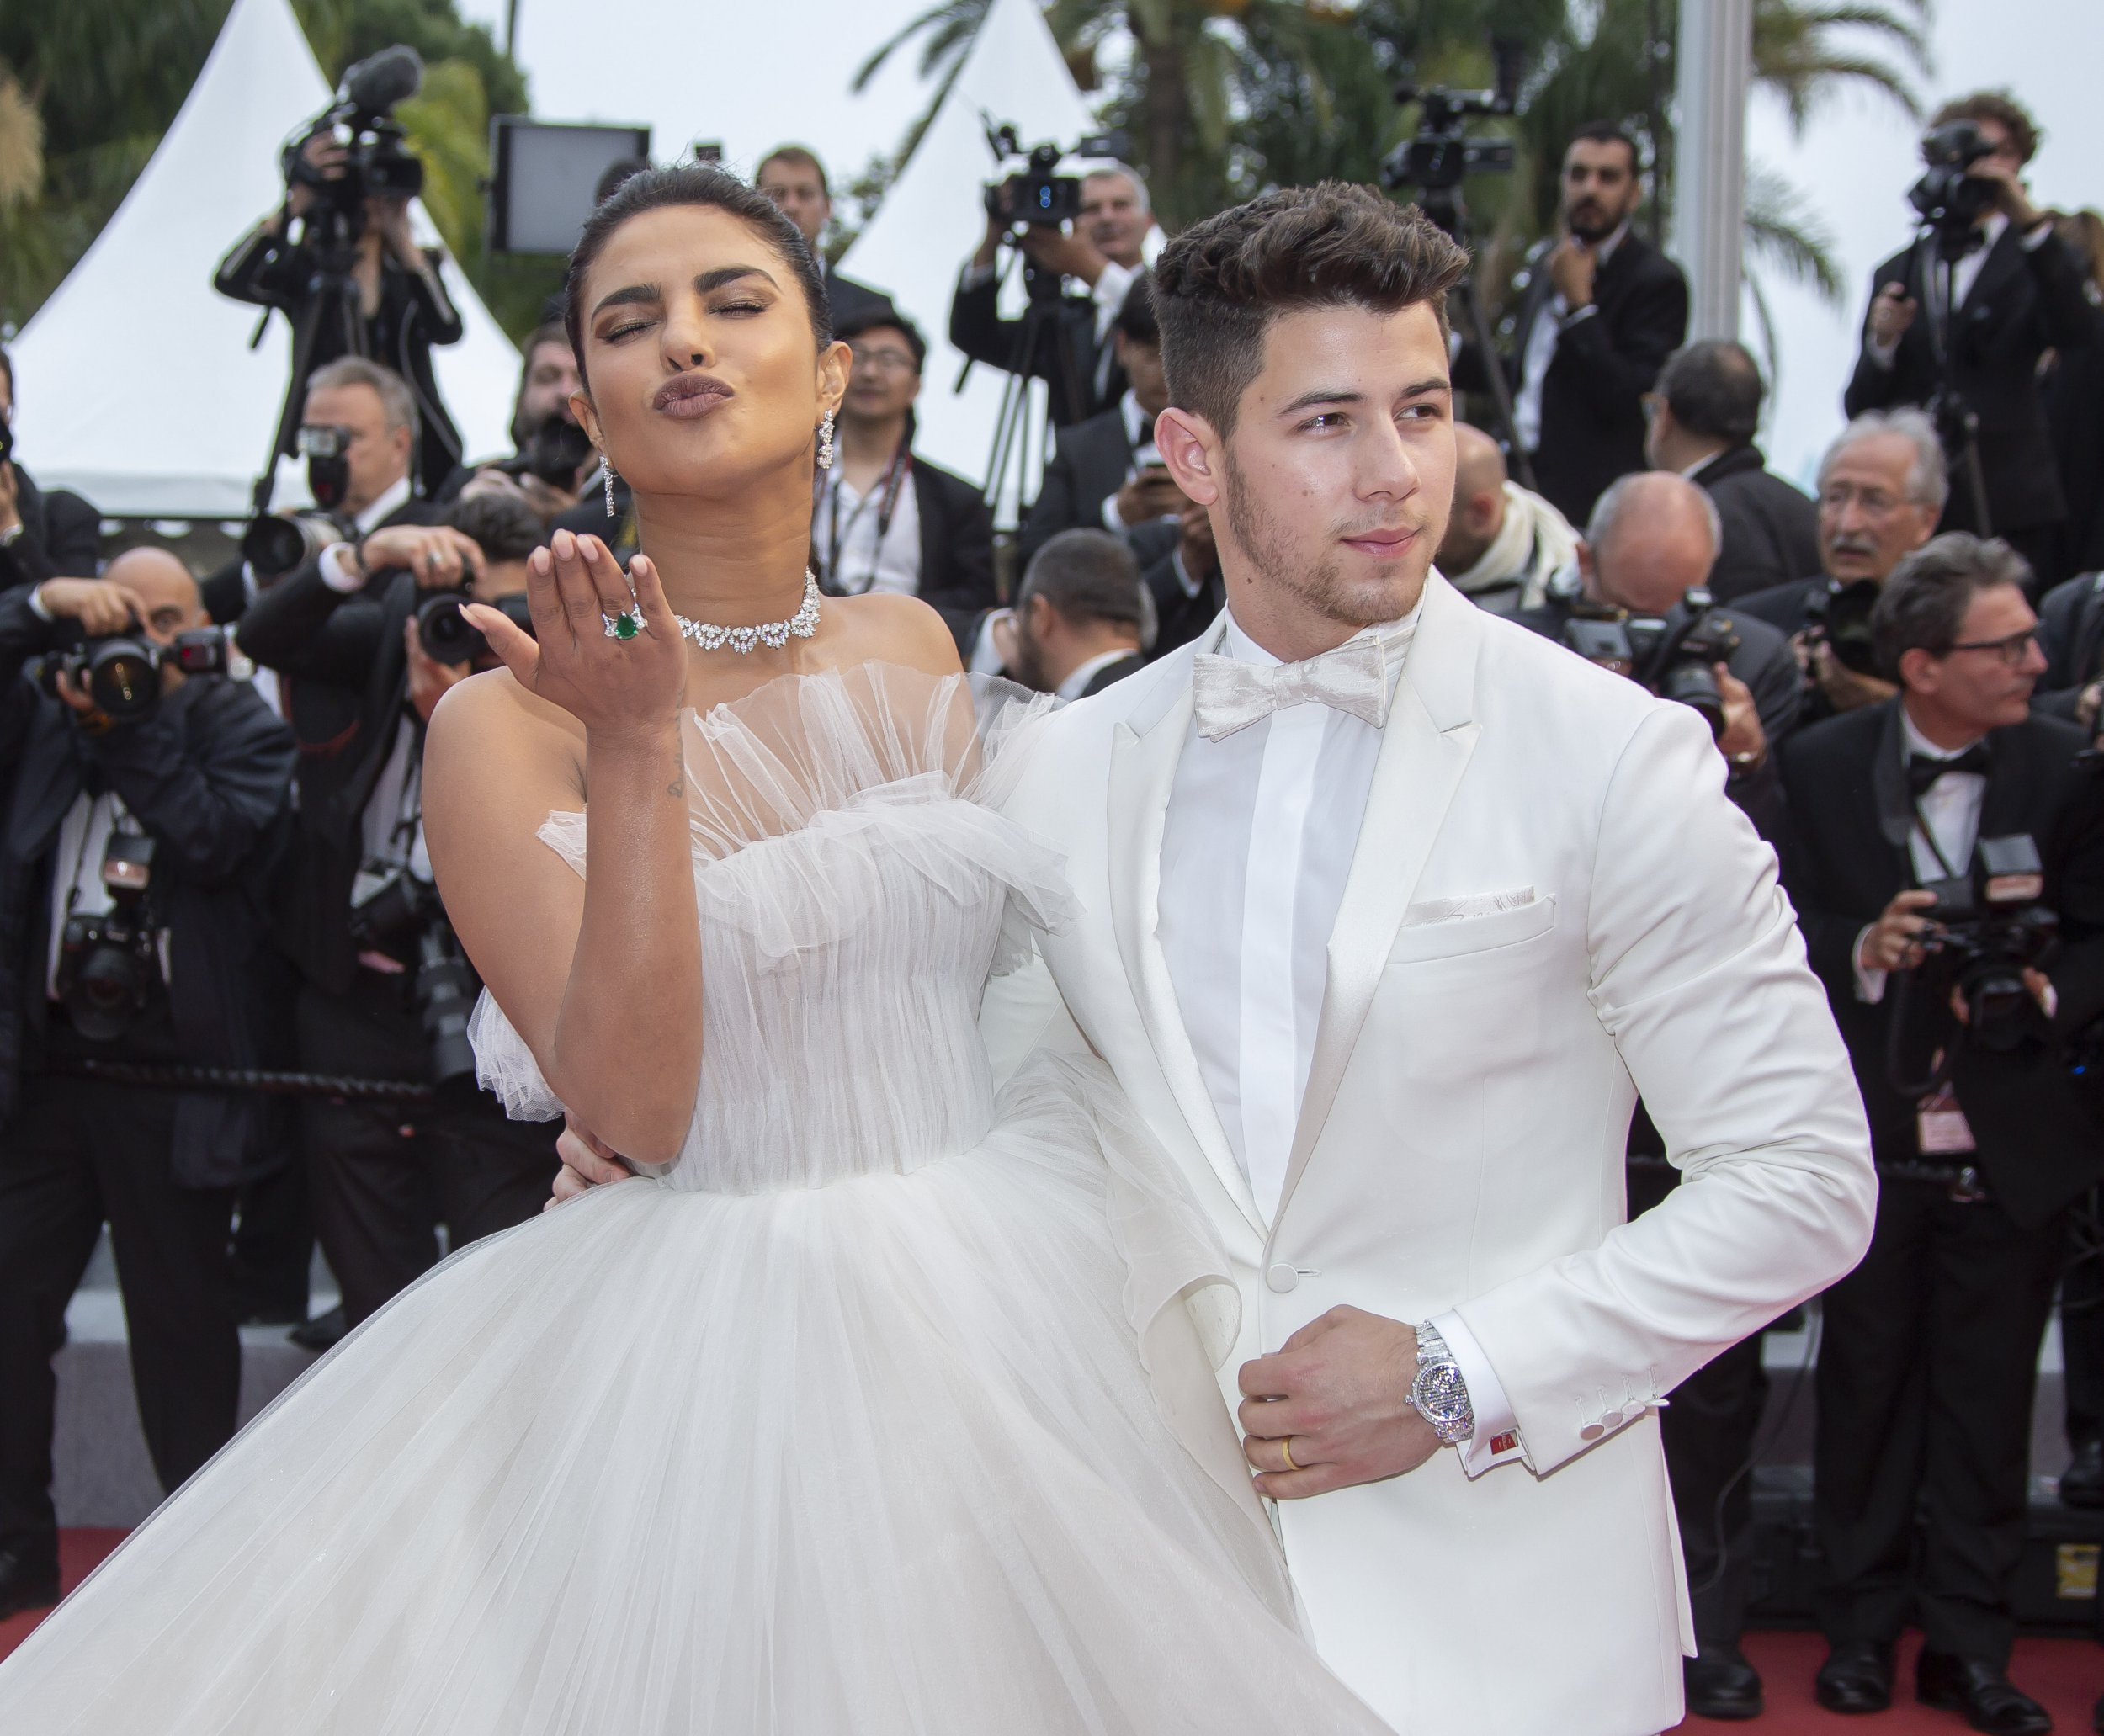 Actress Priyanka Chopra and her father Nick Jonas attend a screening of Les Plus Belles Annees D'Une Vie during a 72nd annual Cannes Film Festival on May 18, 2019 in Cannes, France. 18 May 2019 Pictured: Actress Priyanka Chopra and her father Nick Jonas. Photo credit: KCS Presse / MEGA TheMegaAgency.com +1 888 505 6342